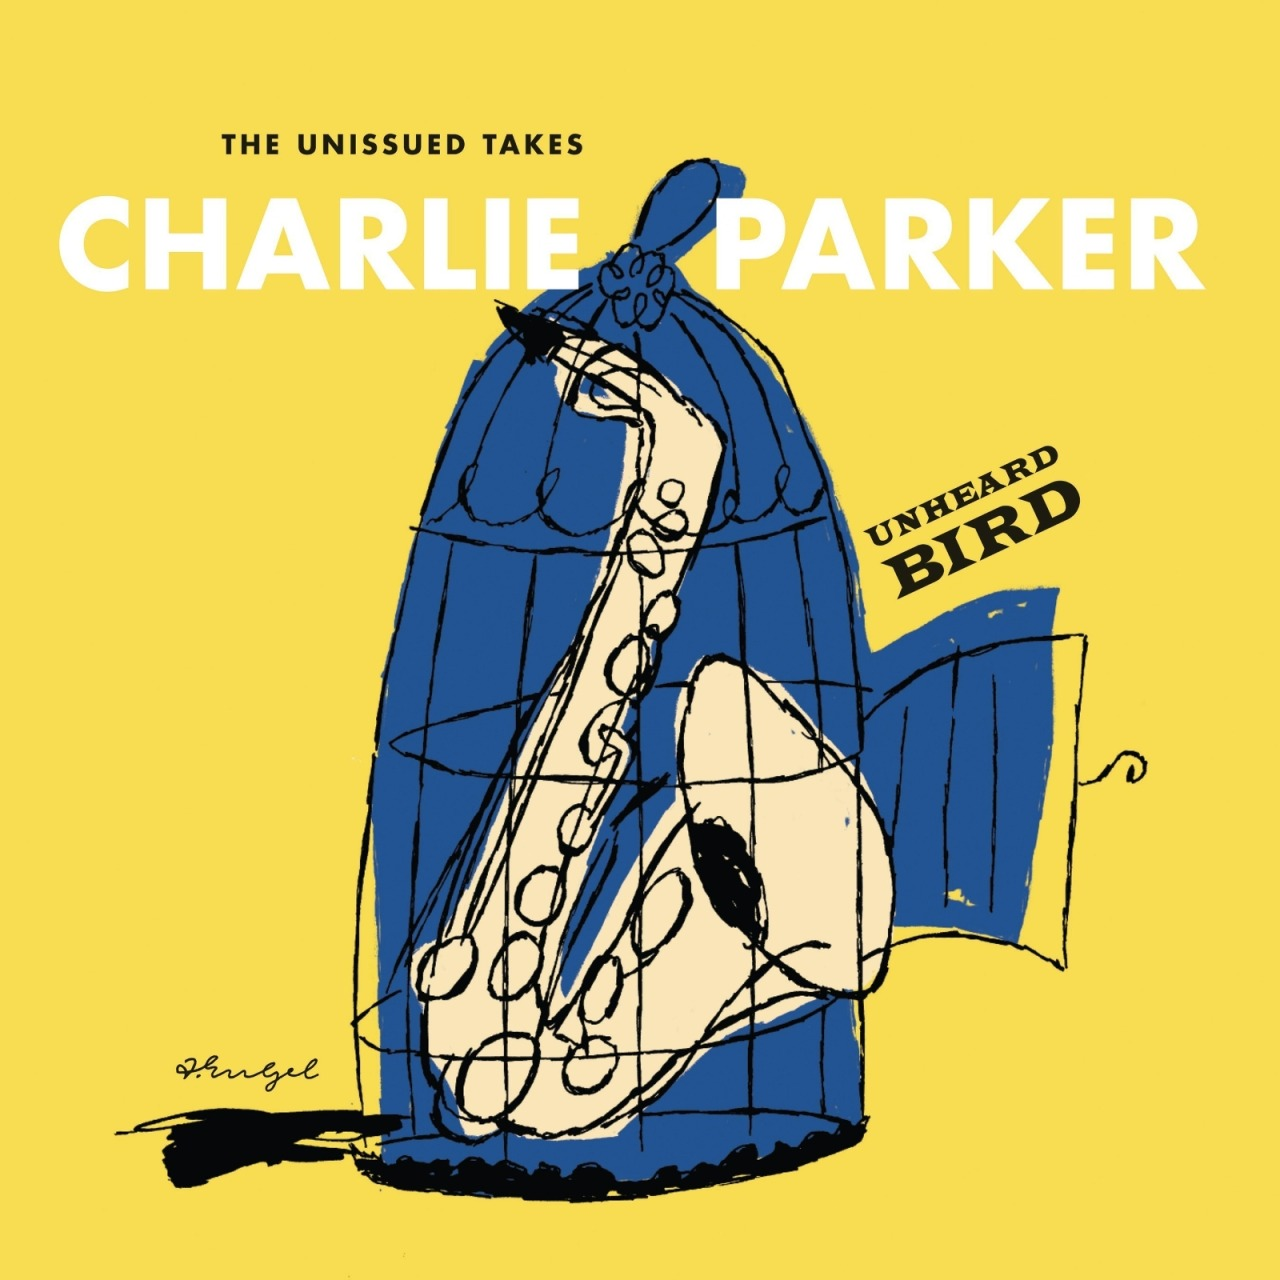 Critic Kevin Whitehead says alto saxophonist Charlie Parker, nicknamed Bird, was one of the single most influential jazz musicians